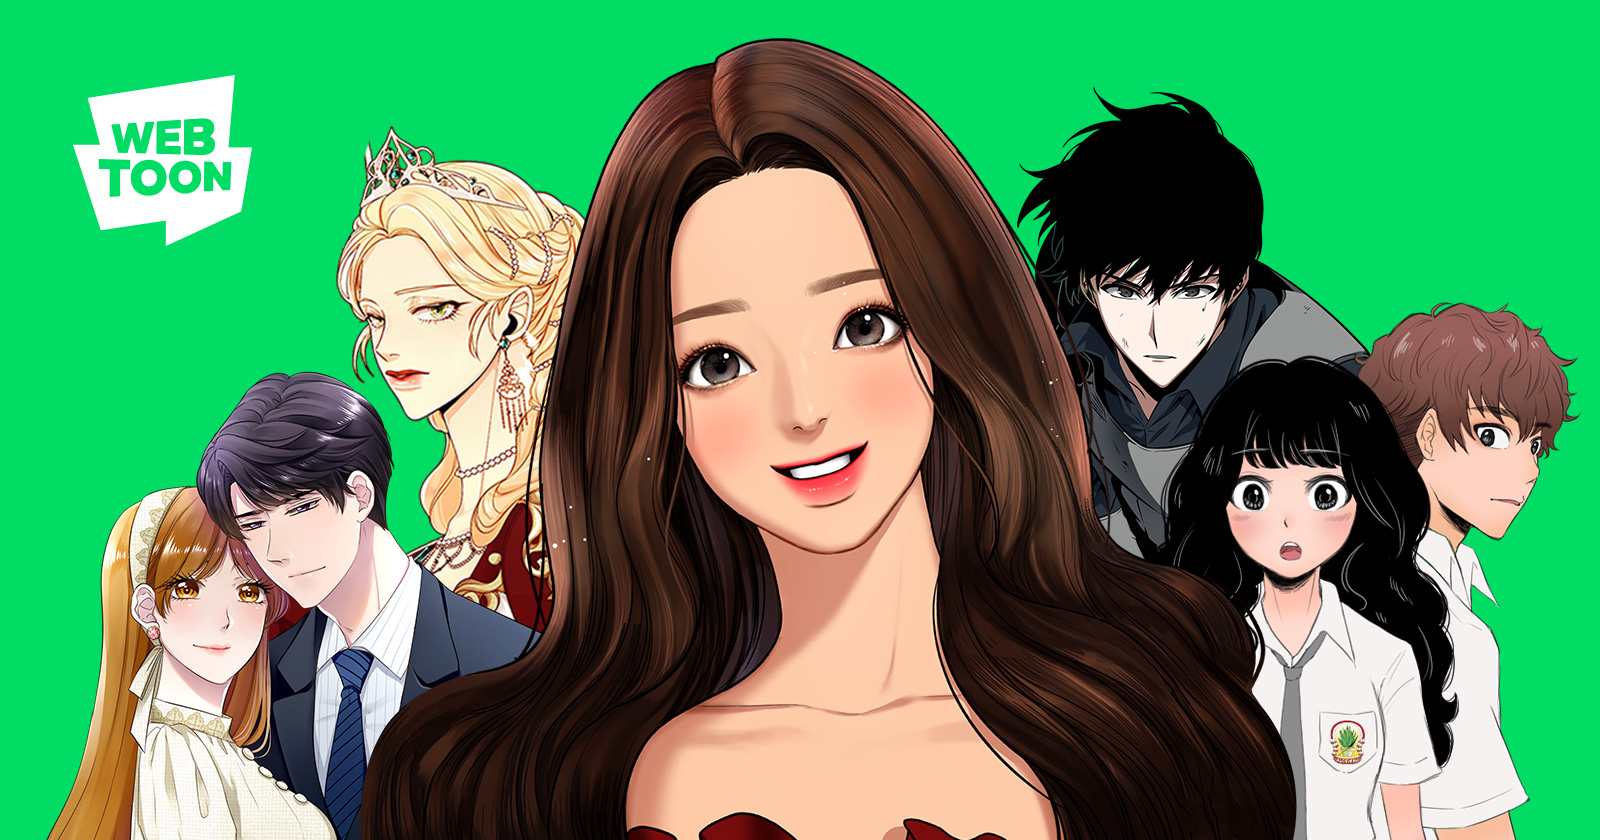 LINE WEBTOON - Global Digital Free Comics Service Platform